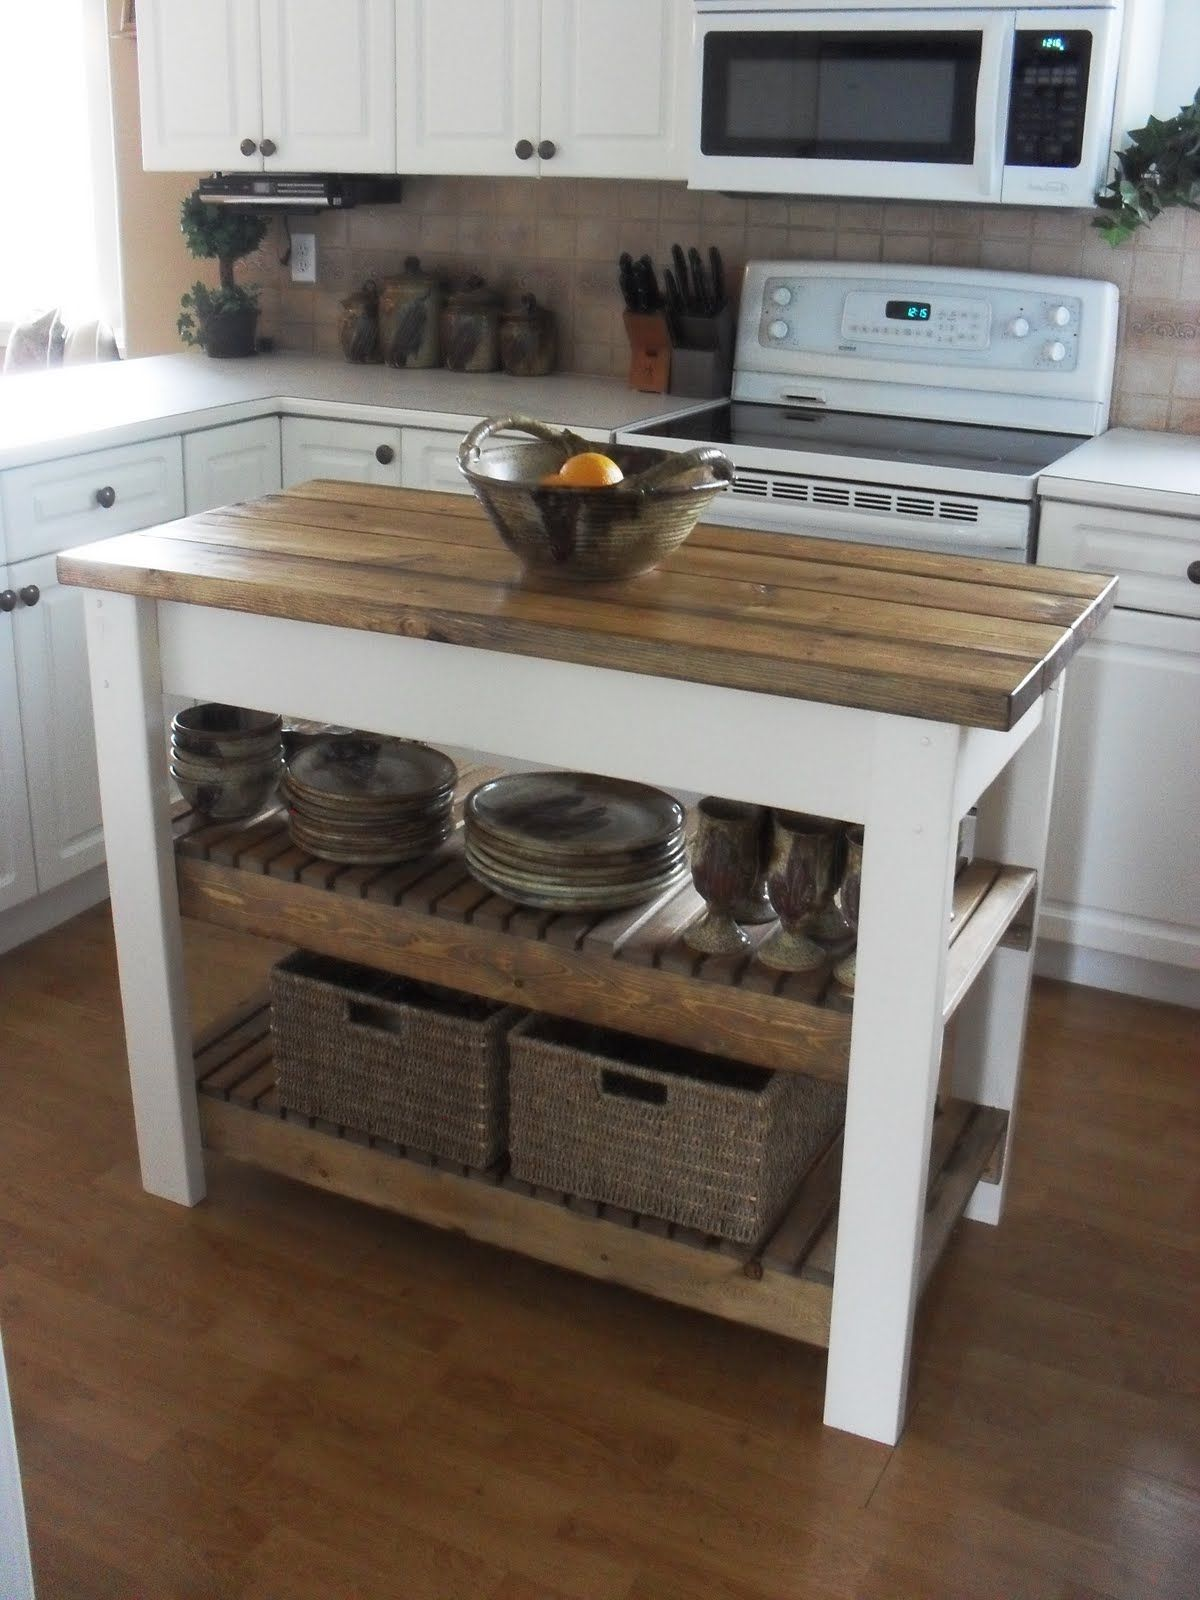 Diy kitchen island i may have to wait until my next home to have room for it but these are great plans for when the time comes